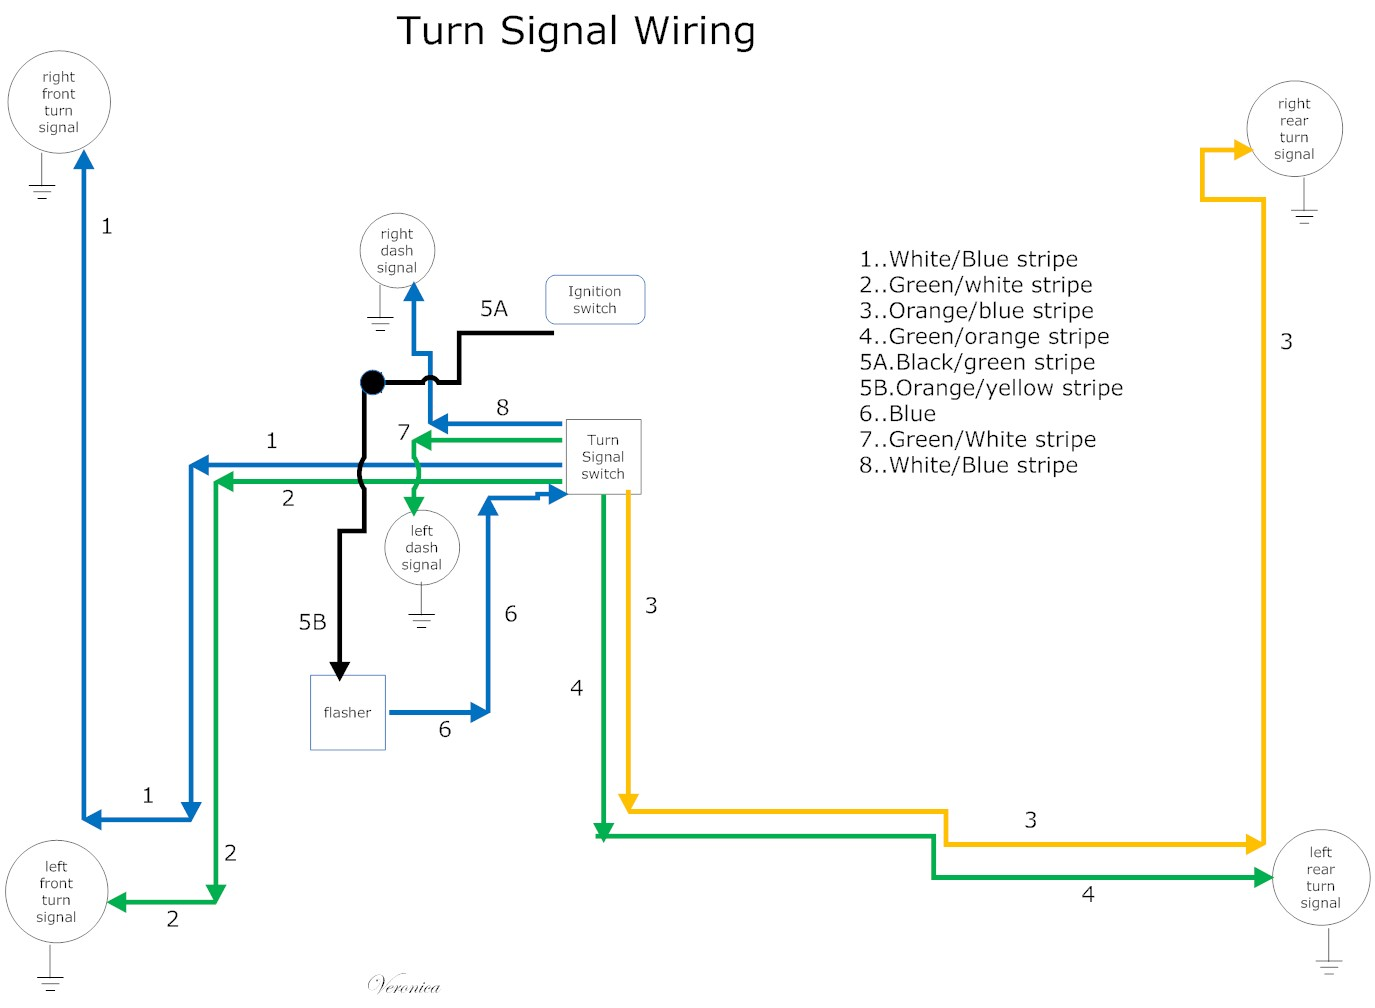 66 Mustang Turn Signal Switch Wiring Diagram